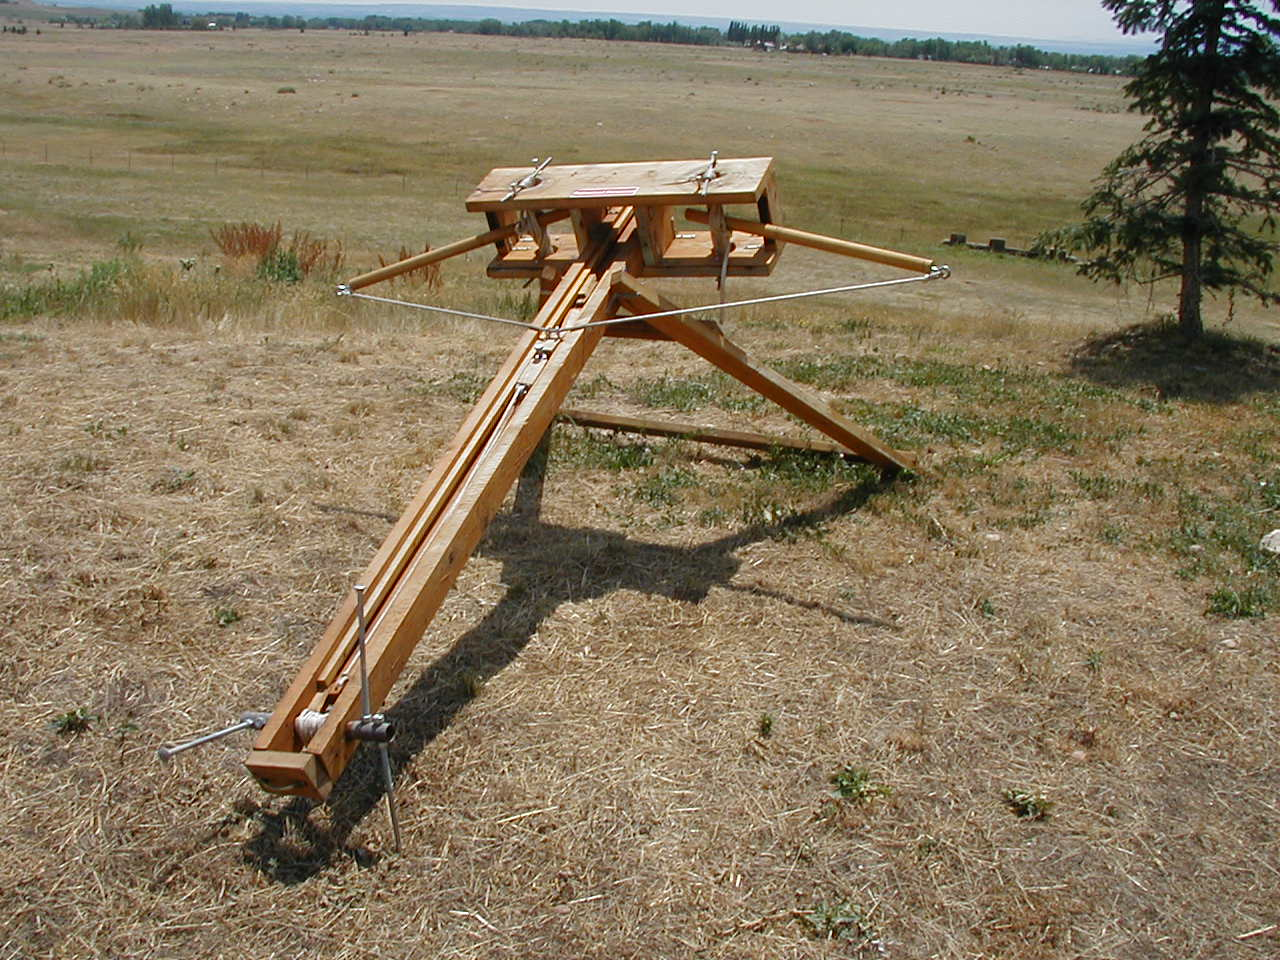 The Ballista. Courtesy of wikipedia.org